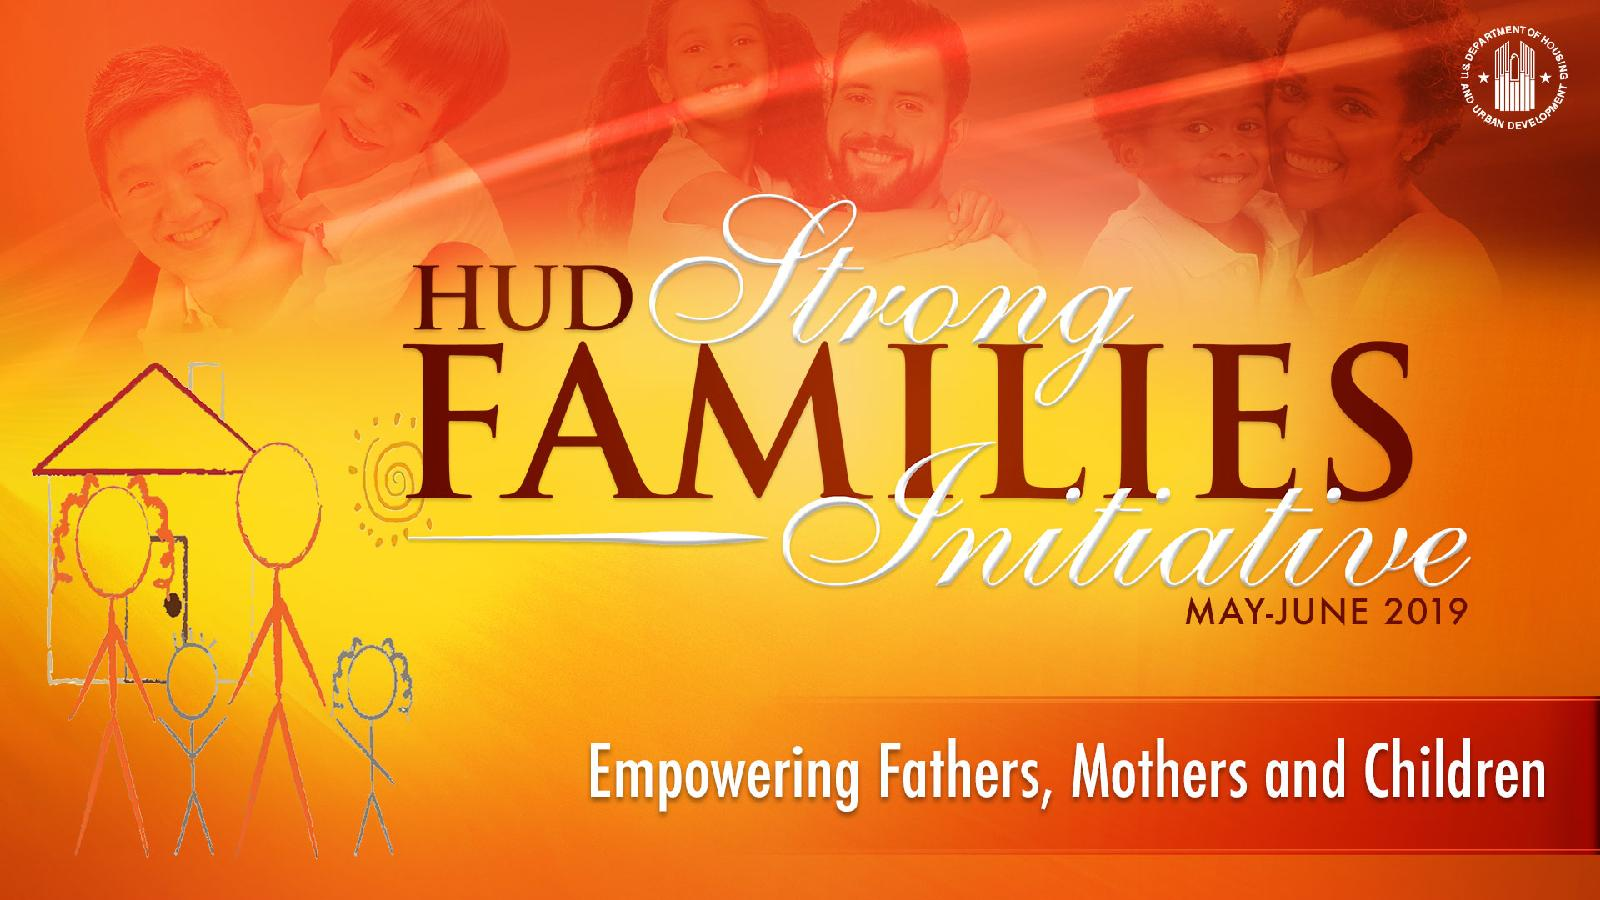 HUD-Strong-Families-Banner 8.5 x 14